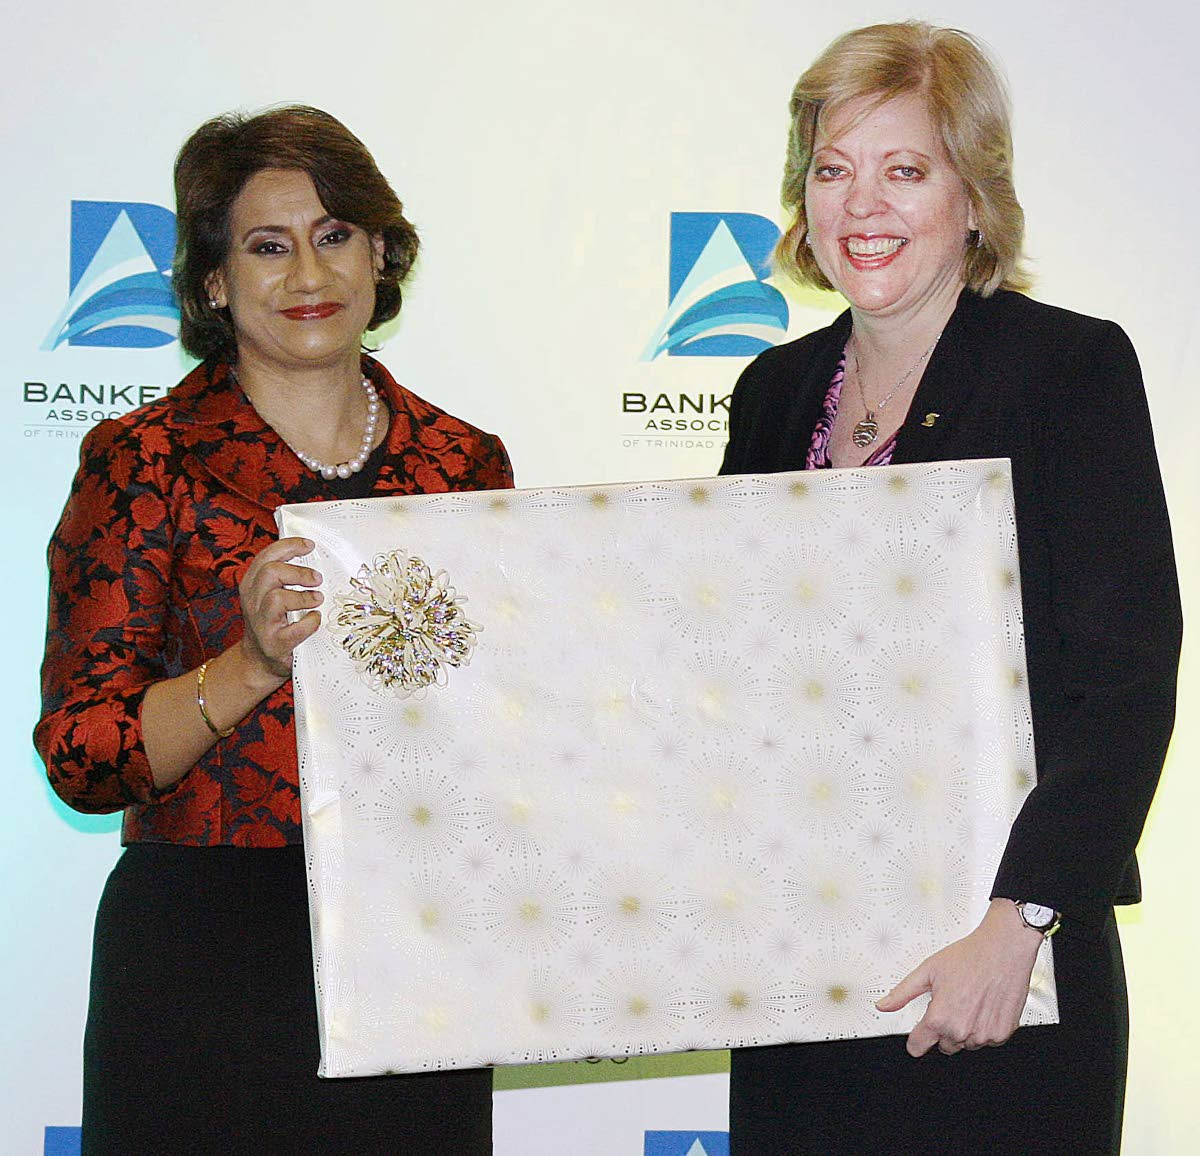 New Vice-President of the Bankers Association of TT (BATT), Karen D'arbasie, presents a gift to outgoing BATT President, Anya Schnoor, at a function on November 1, 2017 during BATT's 20th anniversary celebration at Hyatt Regency, Port of Spain. PHOTO COURTESY BATT